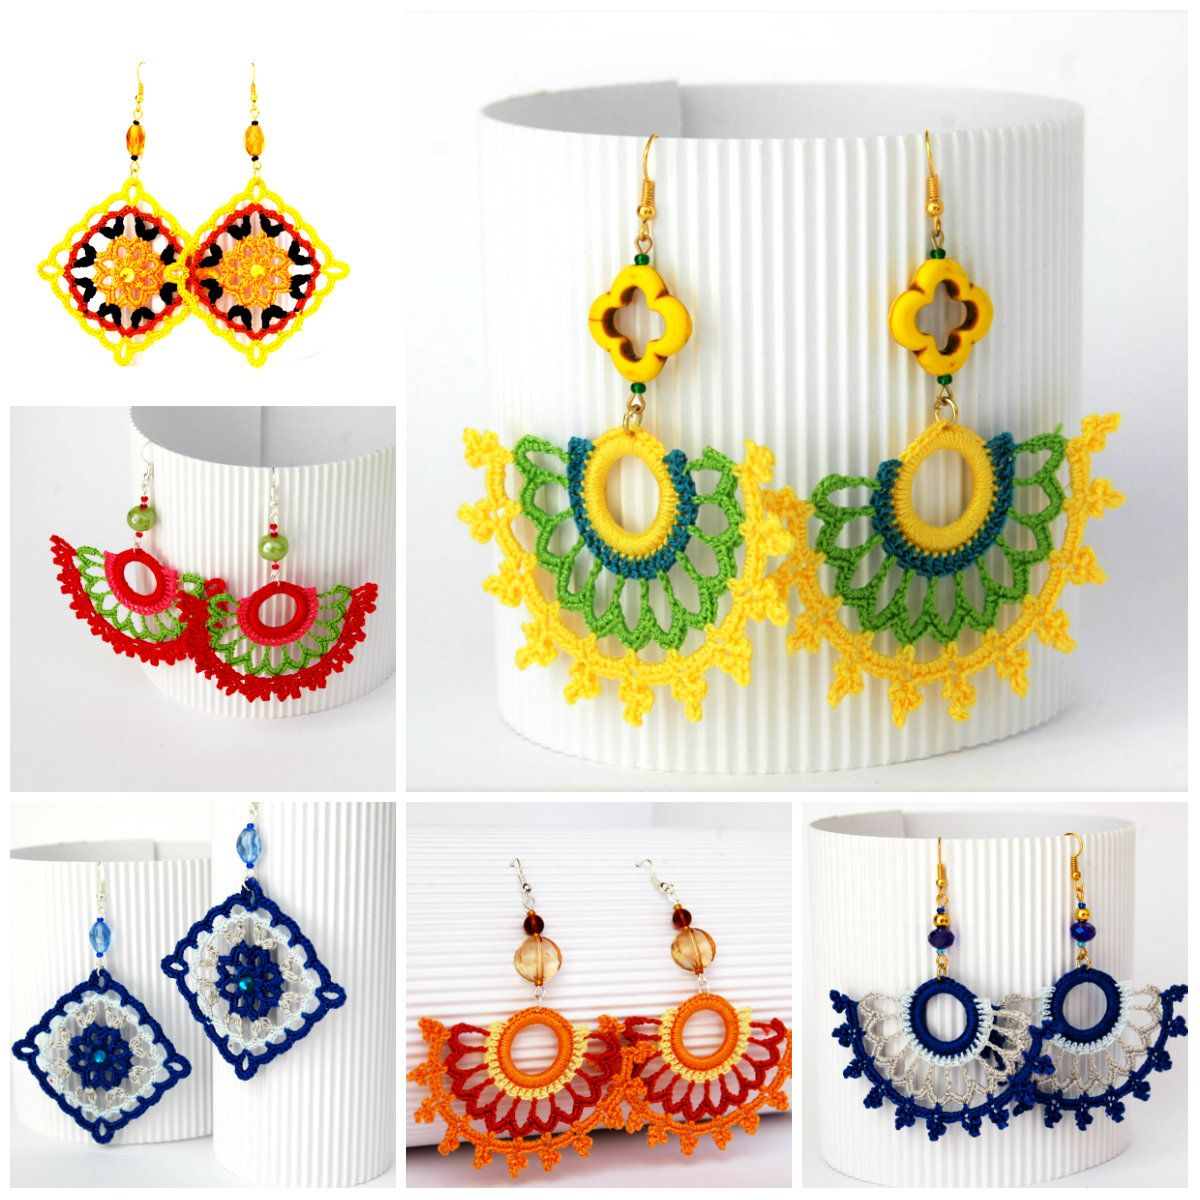 Crochet earrings - Pendientes de ganchillo - Lindapaula | crochet ...